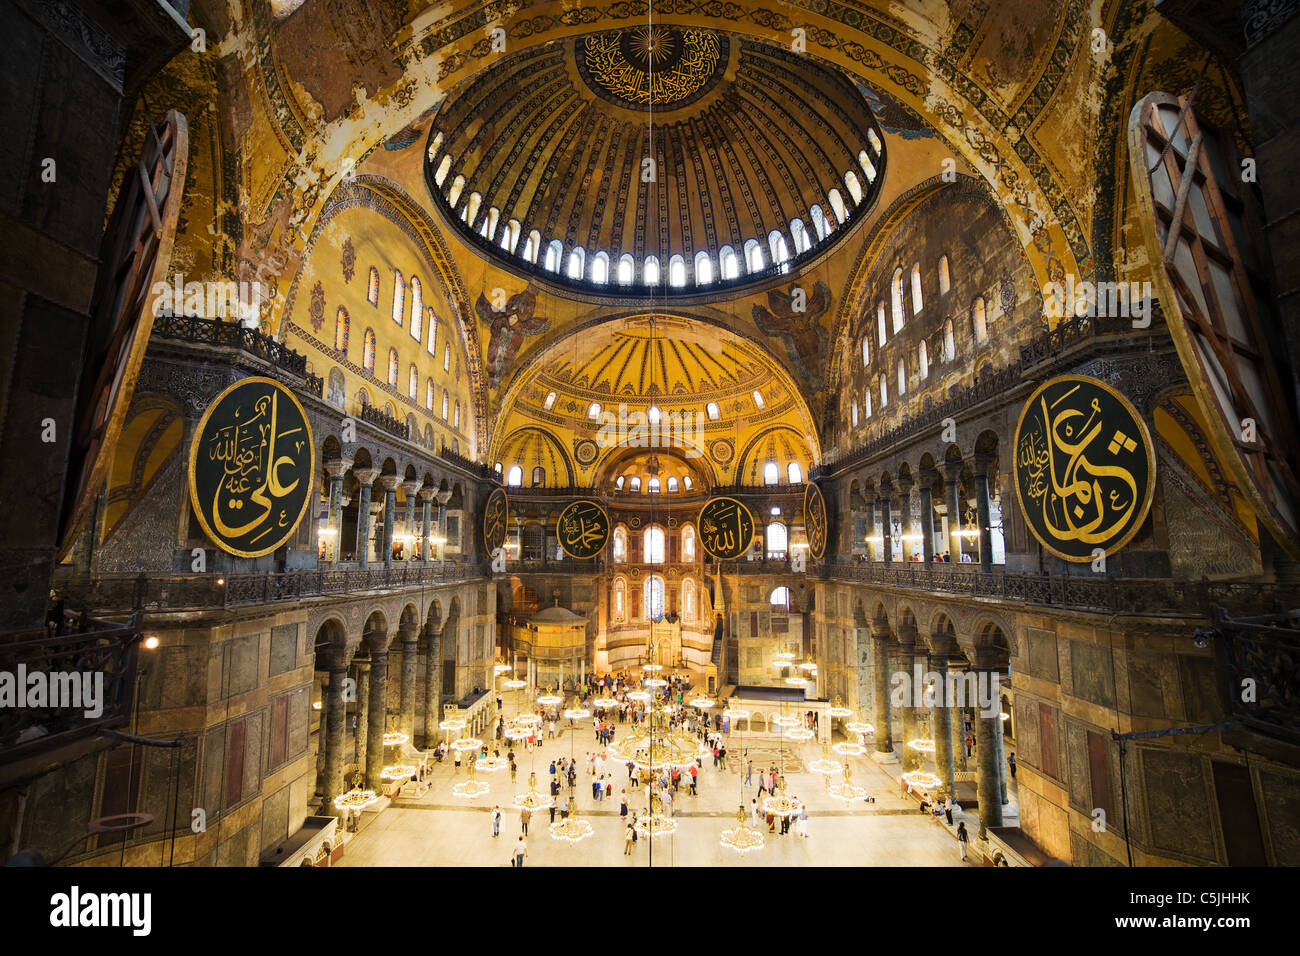 High Quality The Hagia Sophia Interior Architecture, Famous Byzantine Landmark And World  Wonder In Istanbul, Turkey.